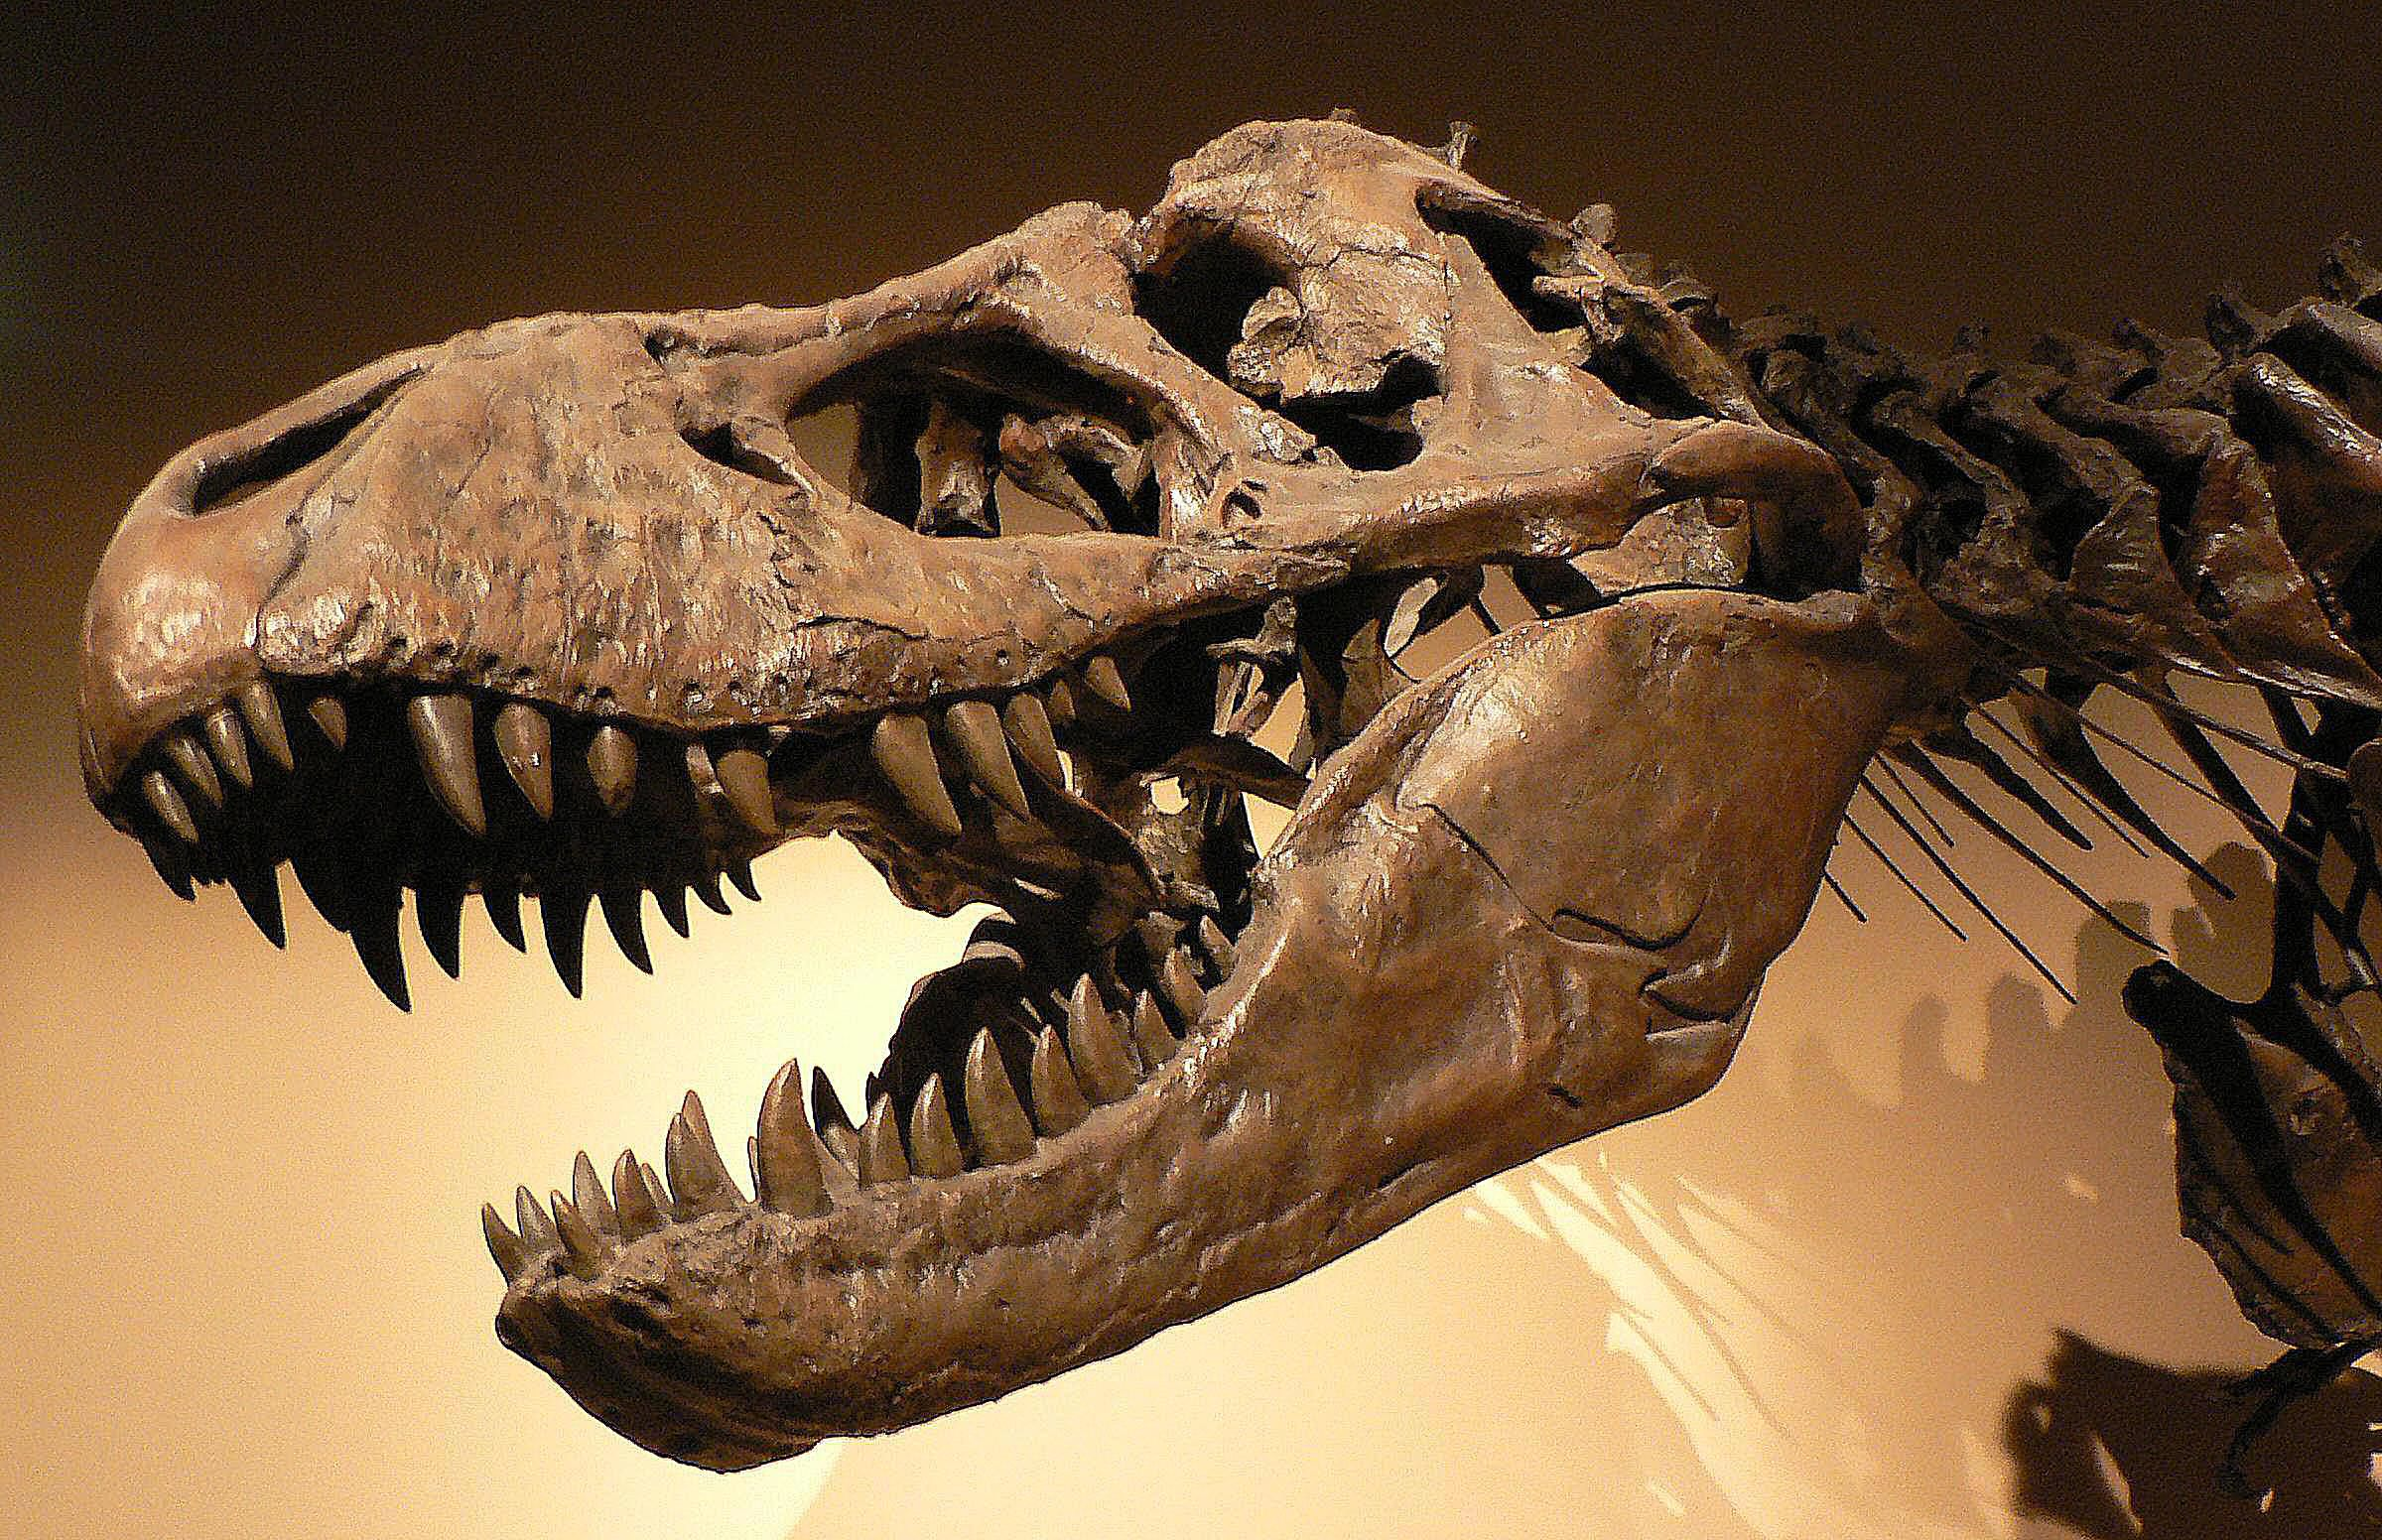 Close-up of the skull of a <I>Tyrannosaurus rex</I> from the late Cretaceous period